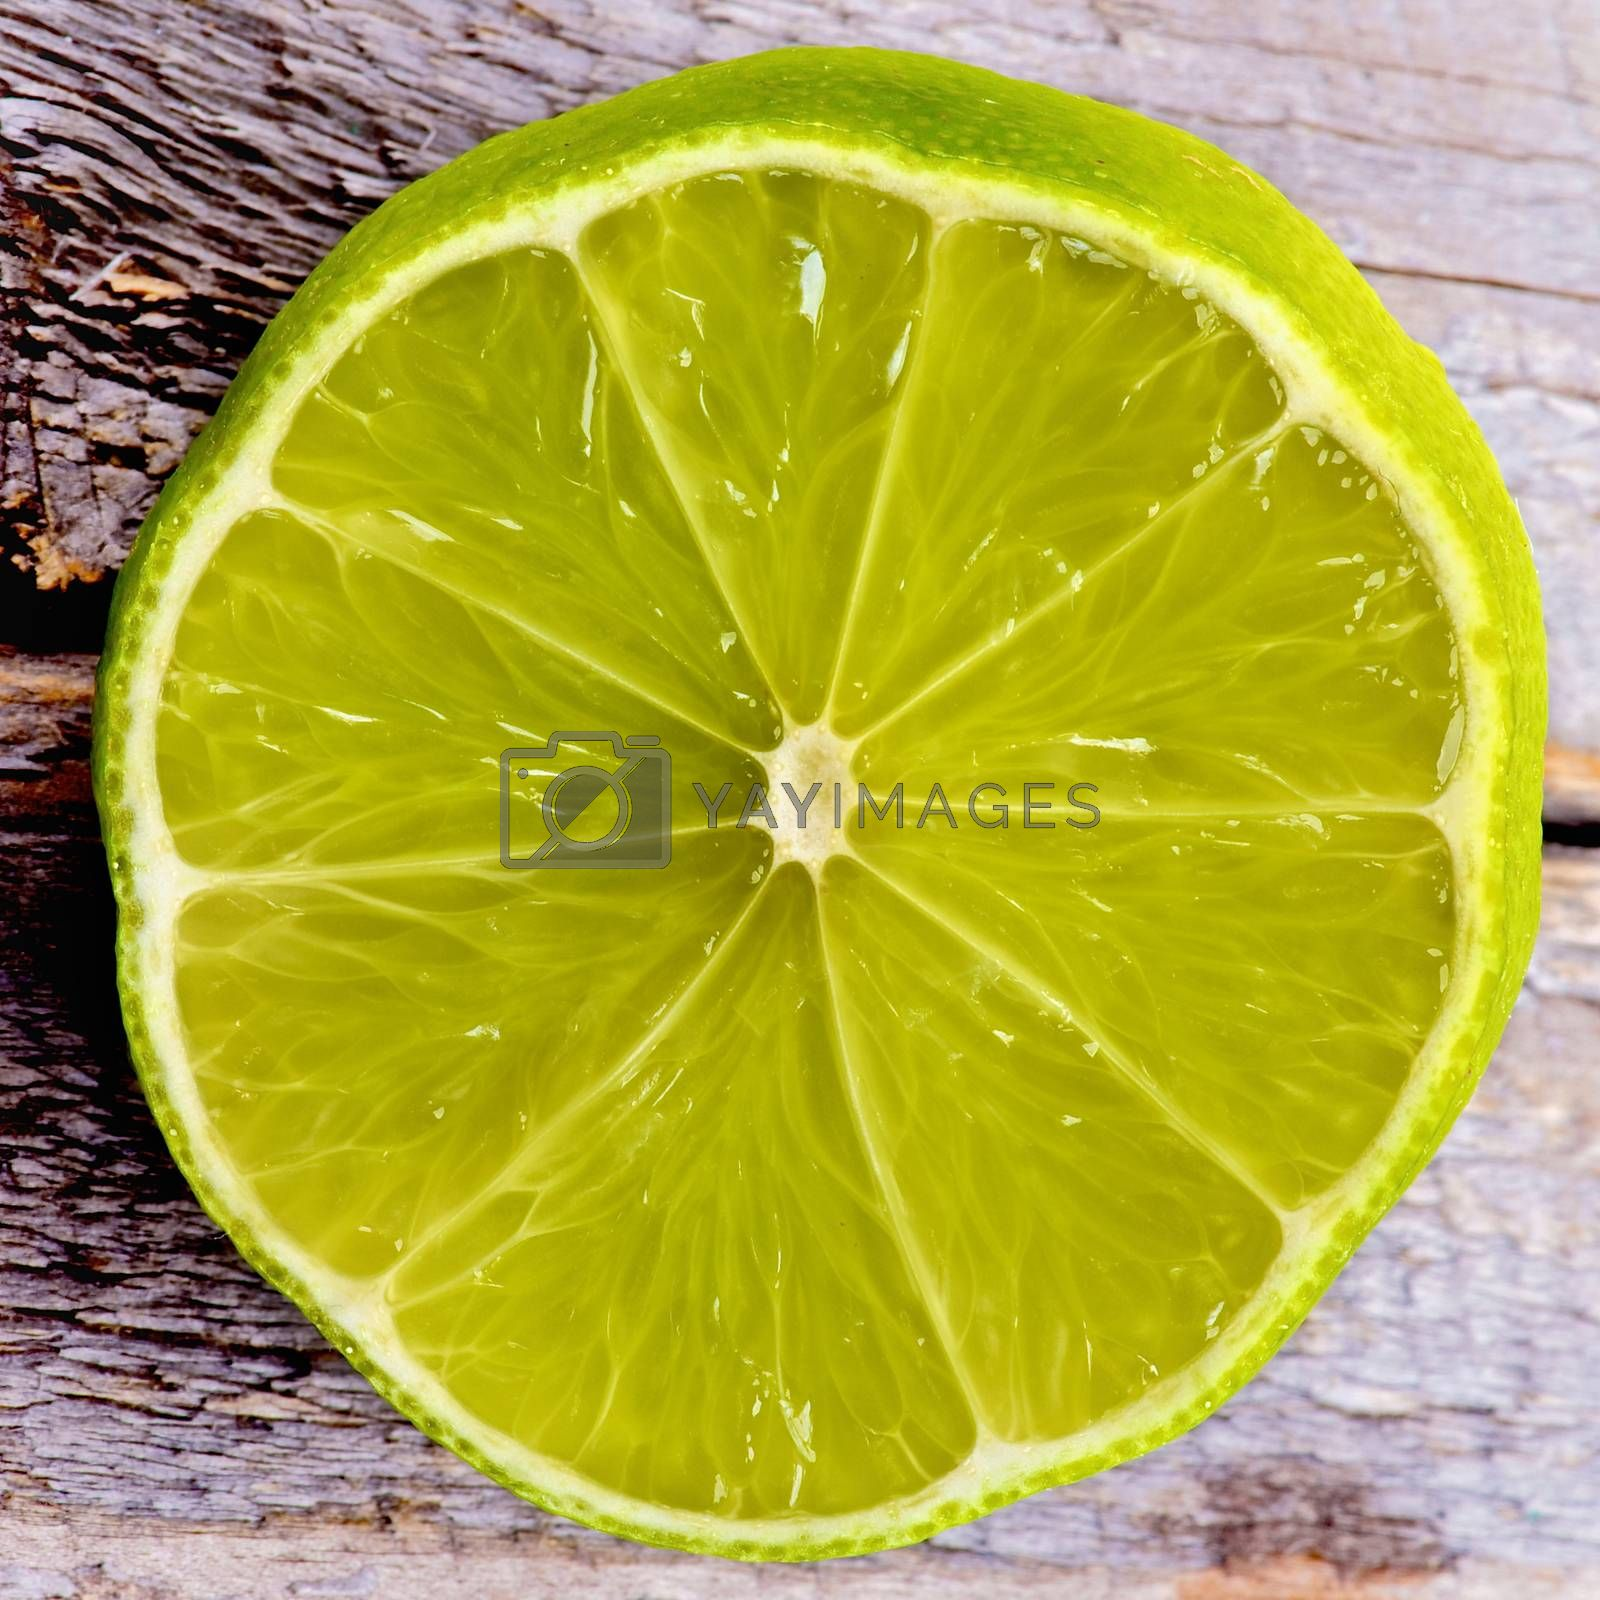 Royalty free image of Lime by zhekos